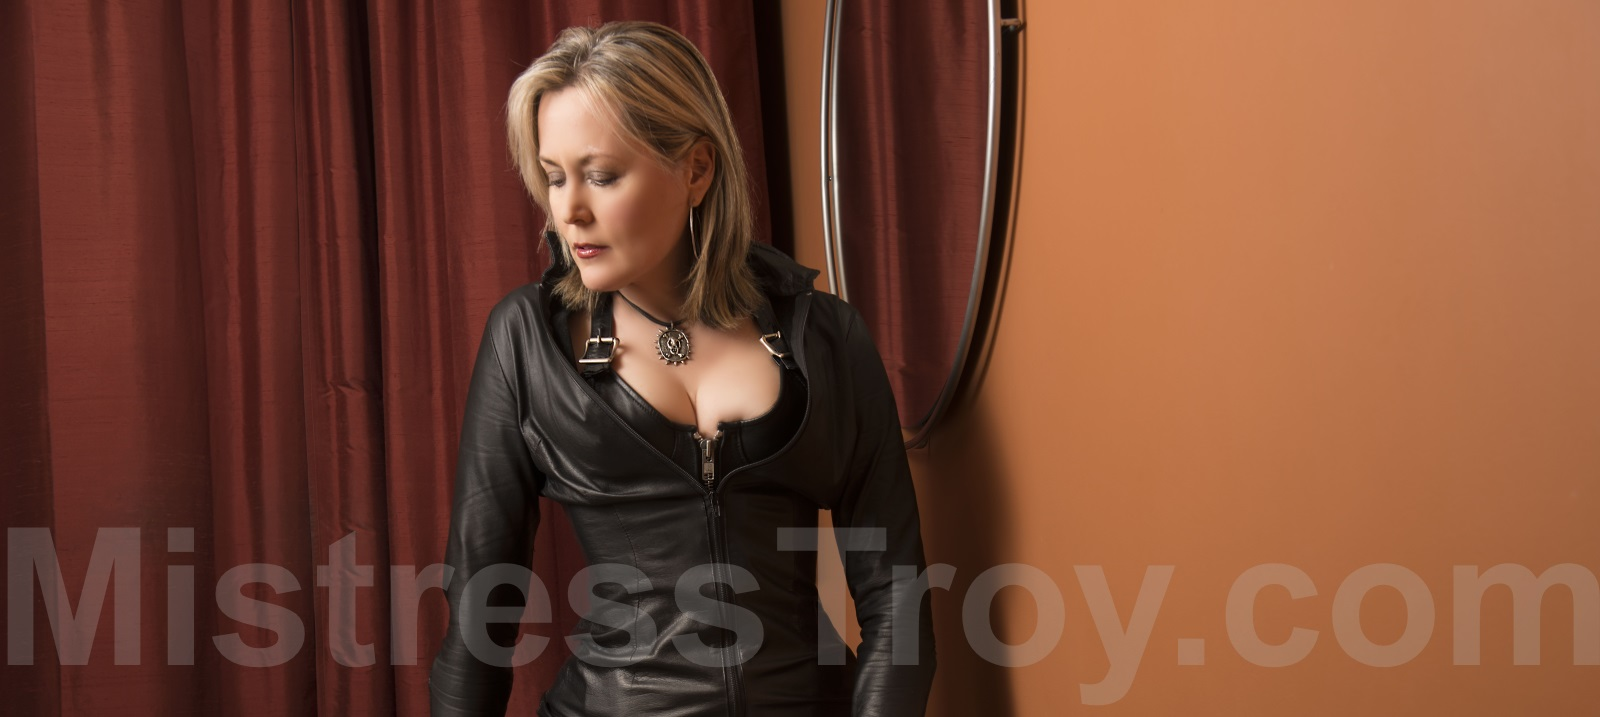 MISTRESS TROY Professional Dominatrix Manhattan NYC New York has a loyal following of submissives, masochists, slaves and fetishists